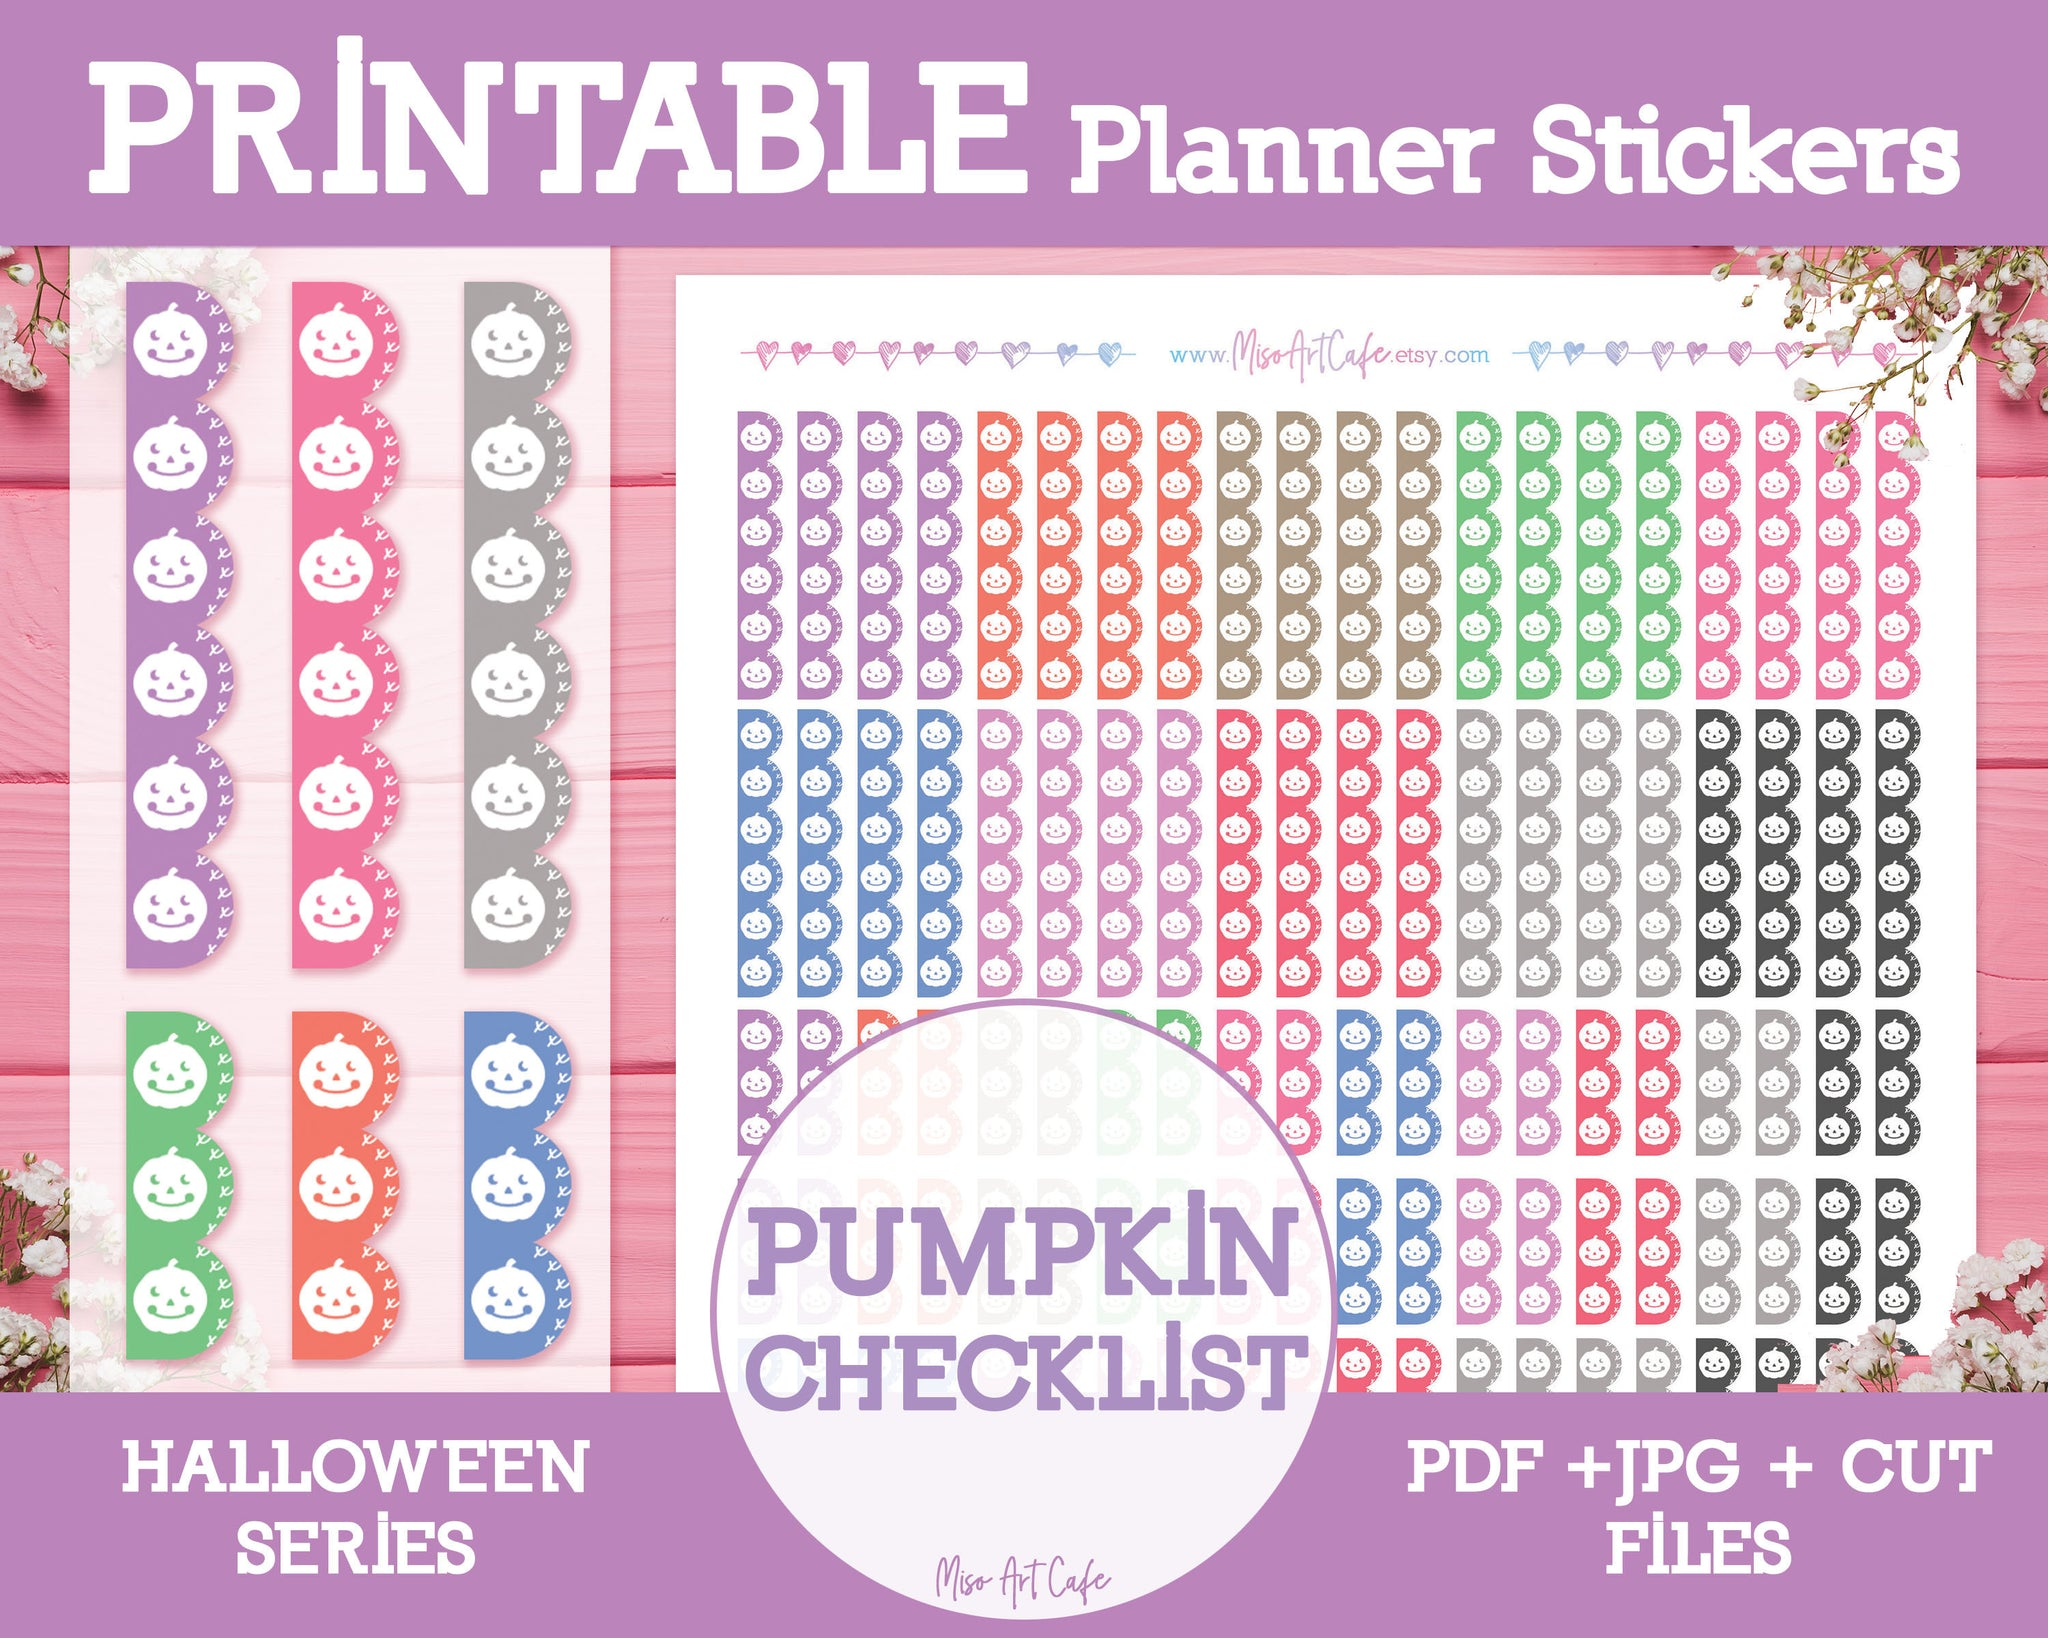 Printable Pumpkin Checklists - Halloween Planner Stickers - Miso Art Cafe Stickers for Planners